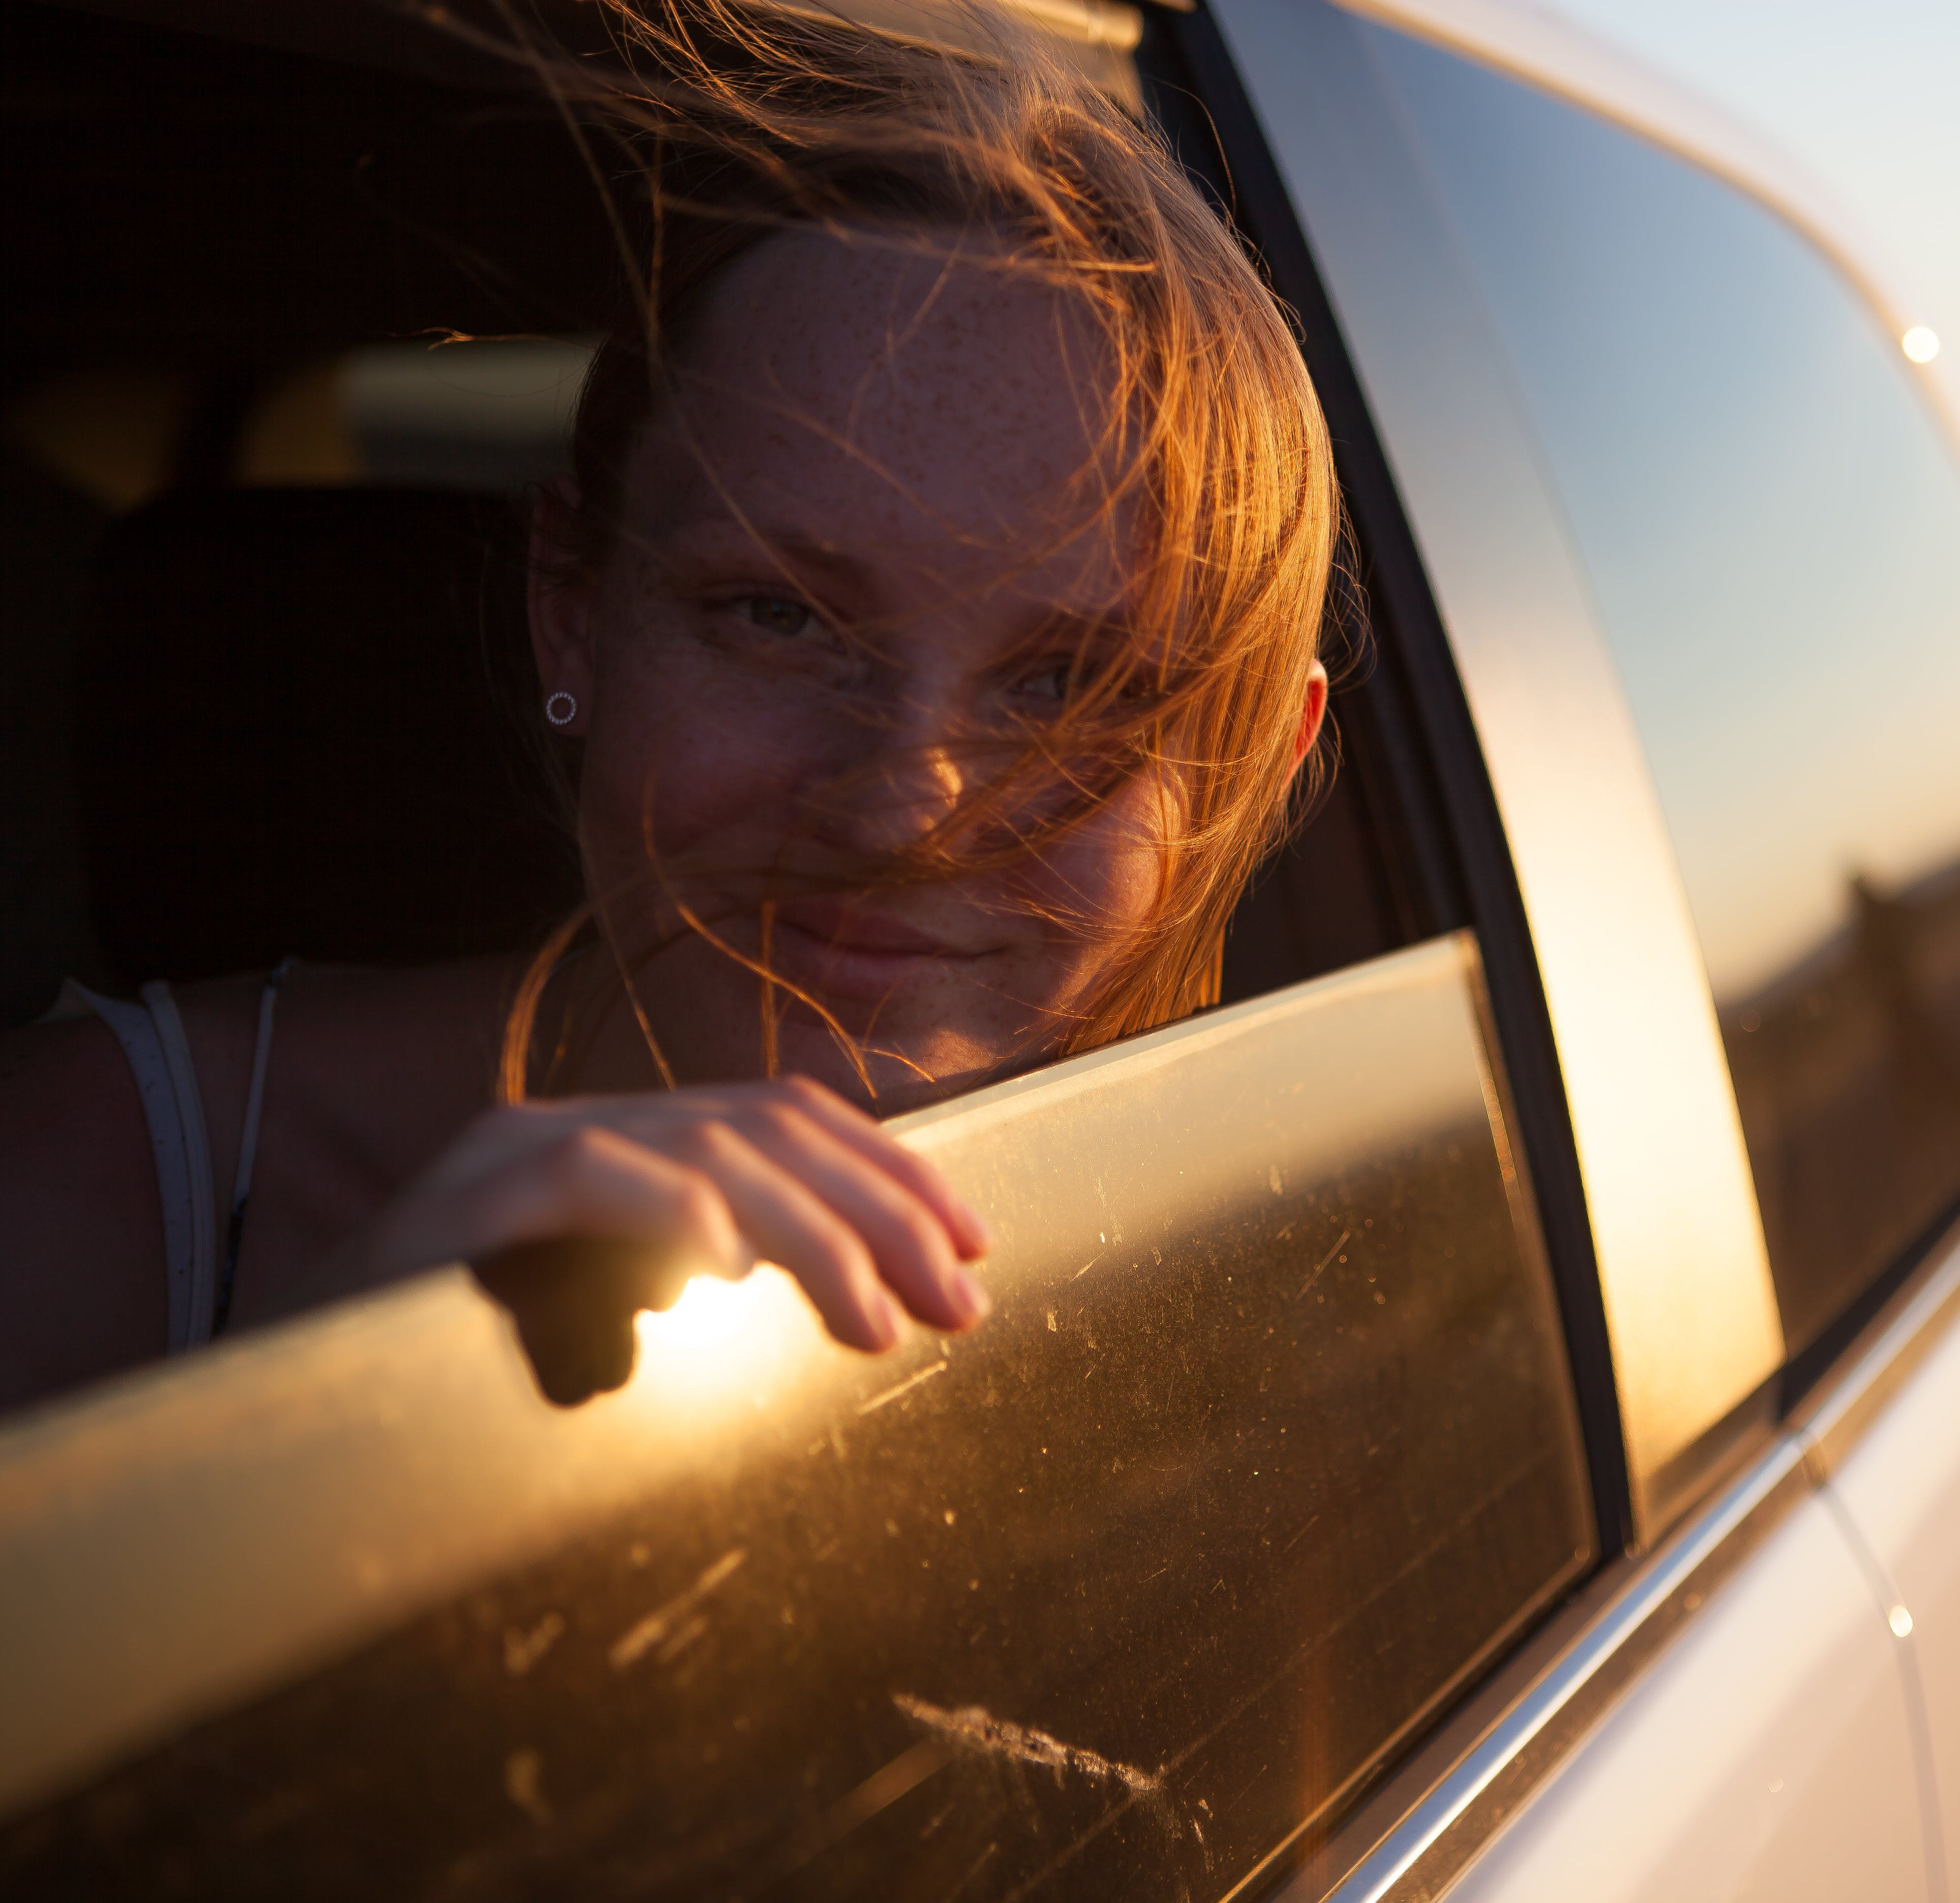 Free stock photo of cute, model, red head, road trip